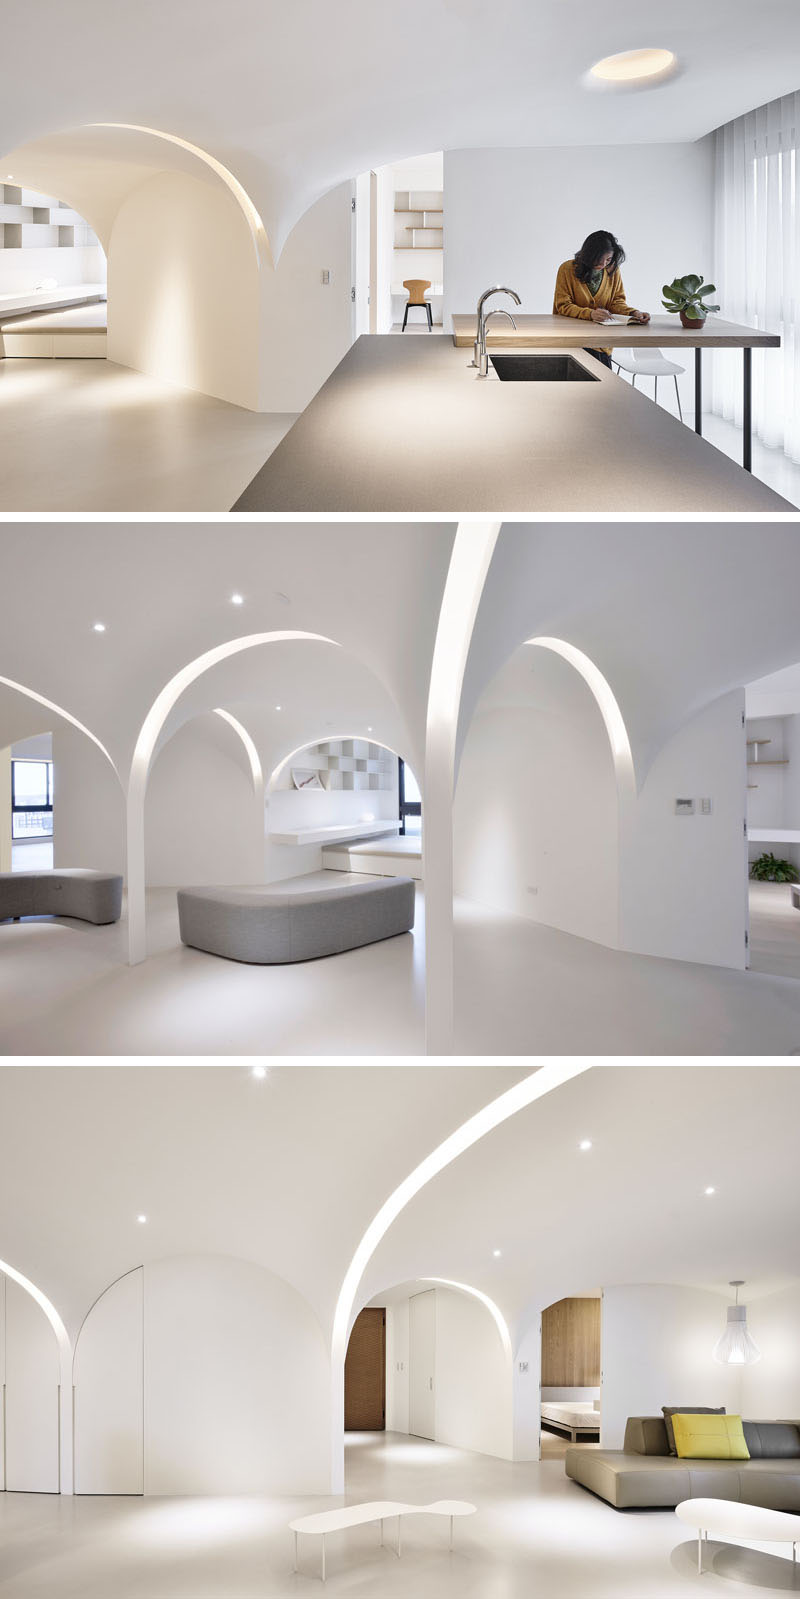 Very Studio   Che Wang Architects have designed the interior of a modern white apartment that features arches that have curved lighting that runs within them. #InteriorDesign #Lighting #Archway